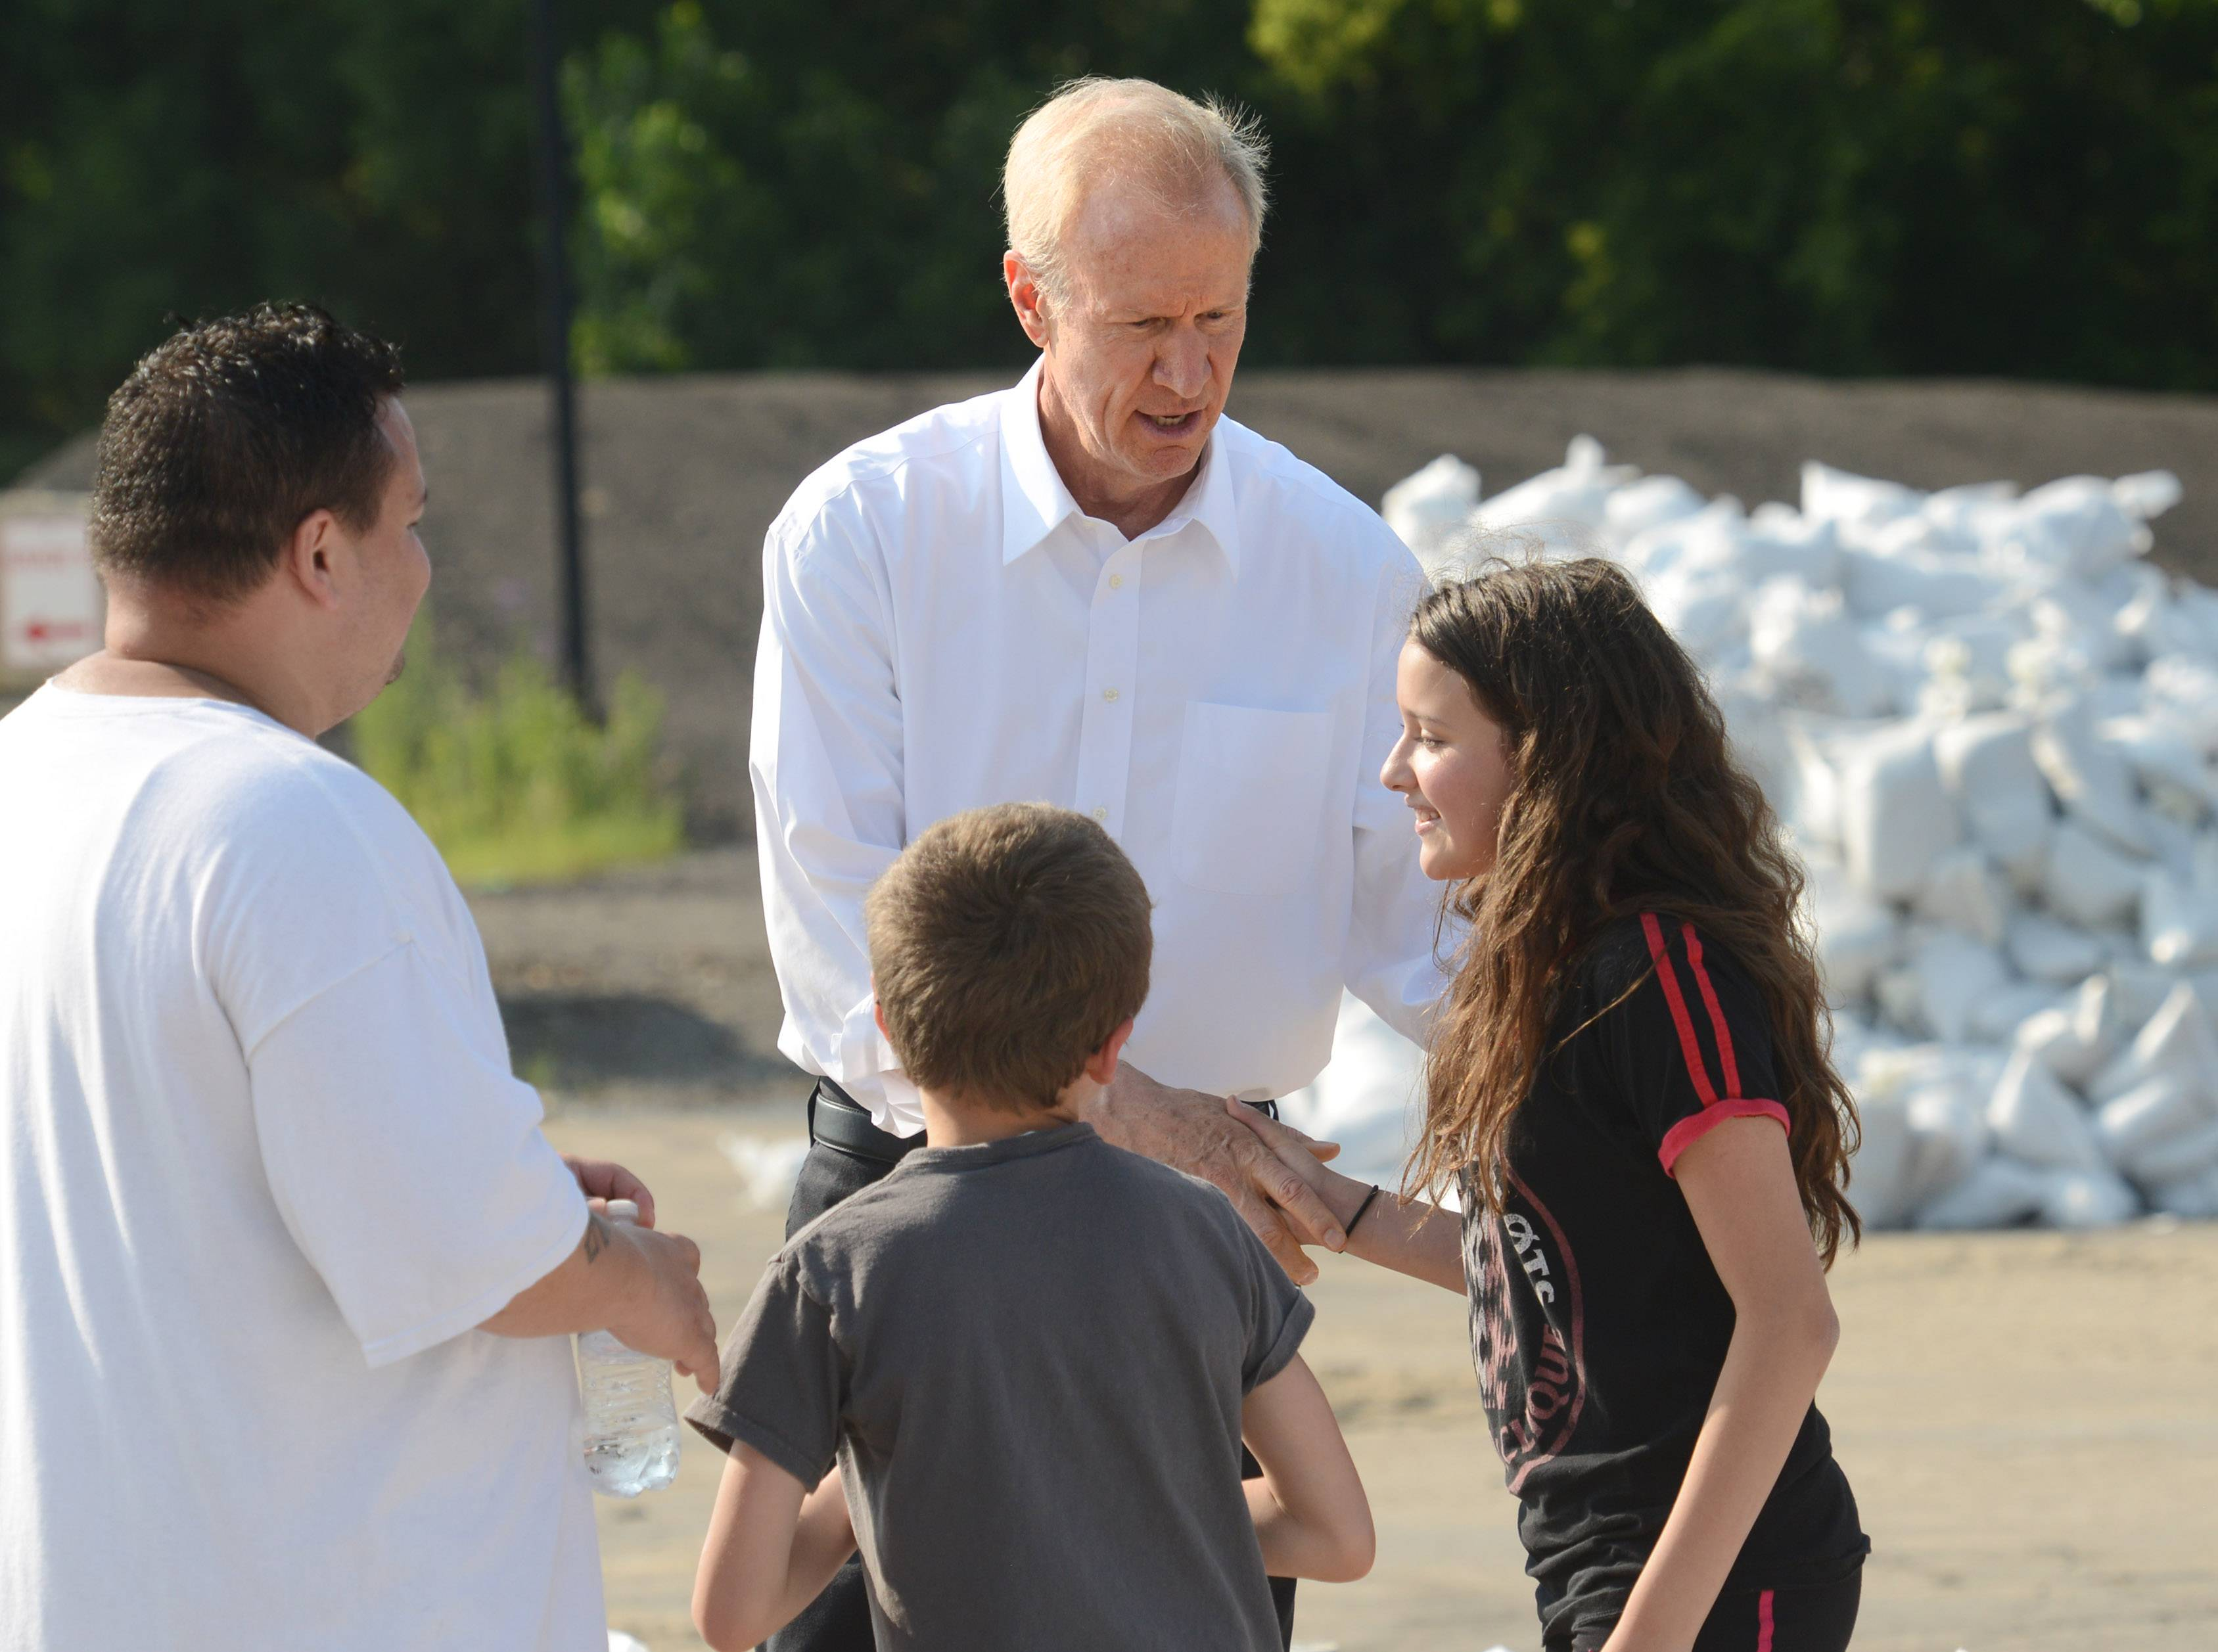 South Elgin resident Manuel Ramirez, left, brought his children Caleb, 11, and Cadence, 12 right, to volunteer filling sandbags Sunday at the Algonquin public works facility. While working, they were thanked by Gov. Bruce Rauner.